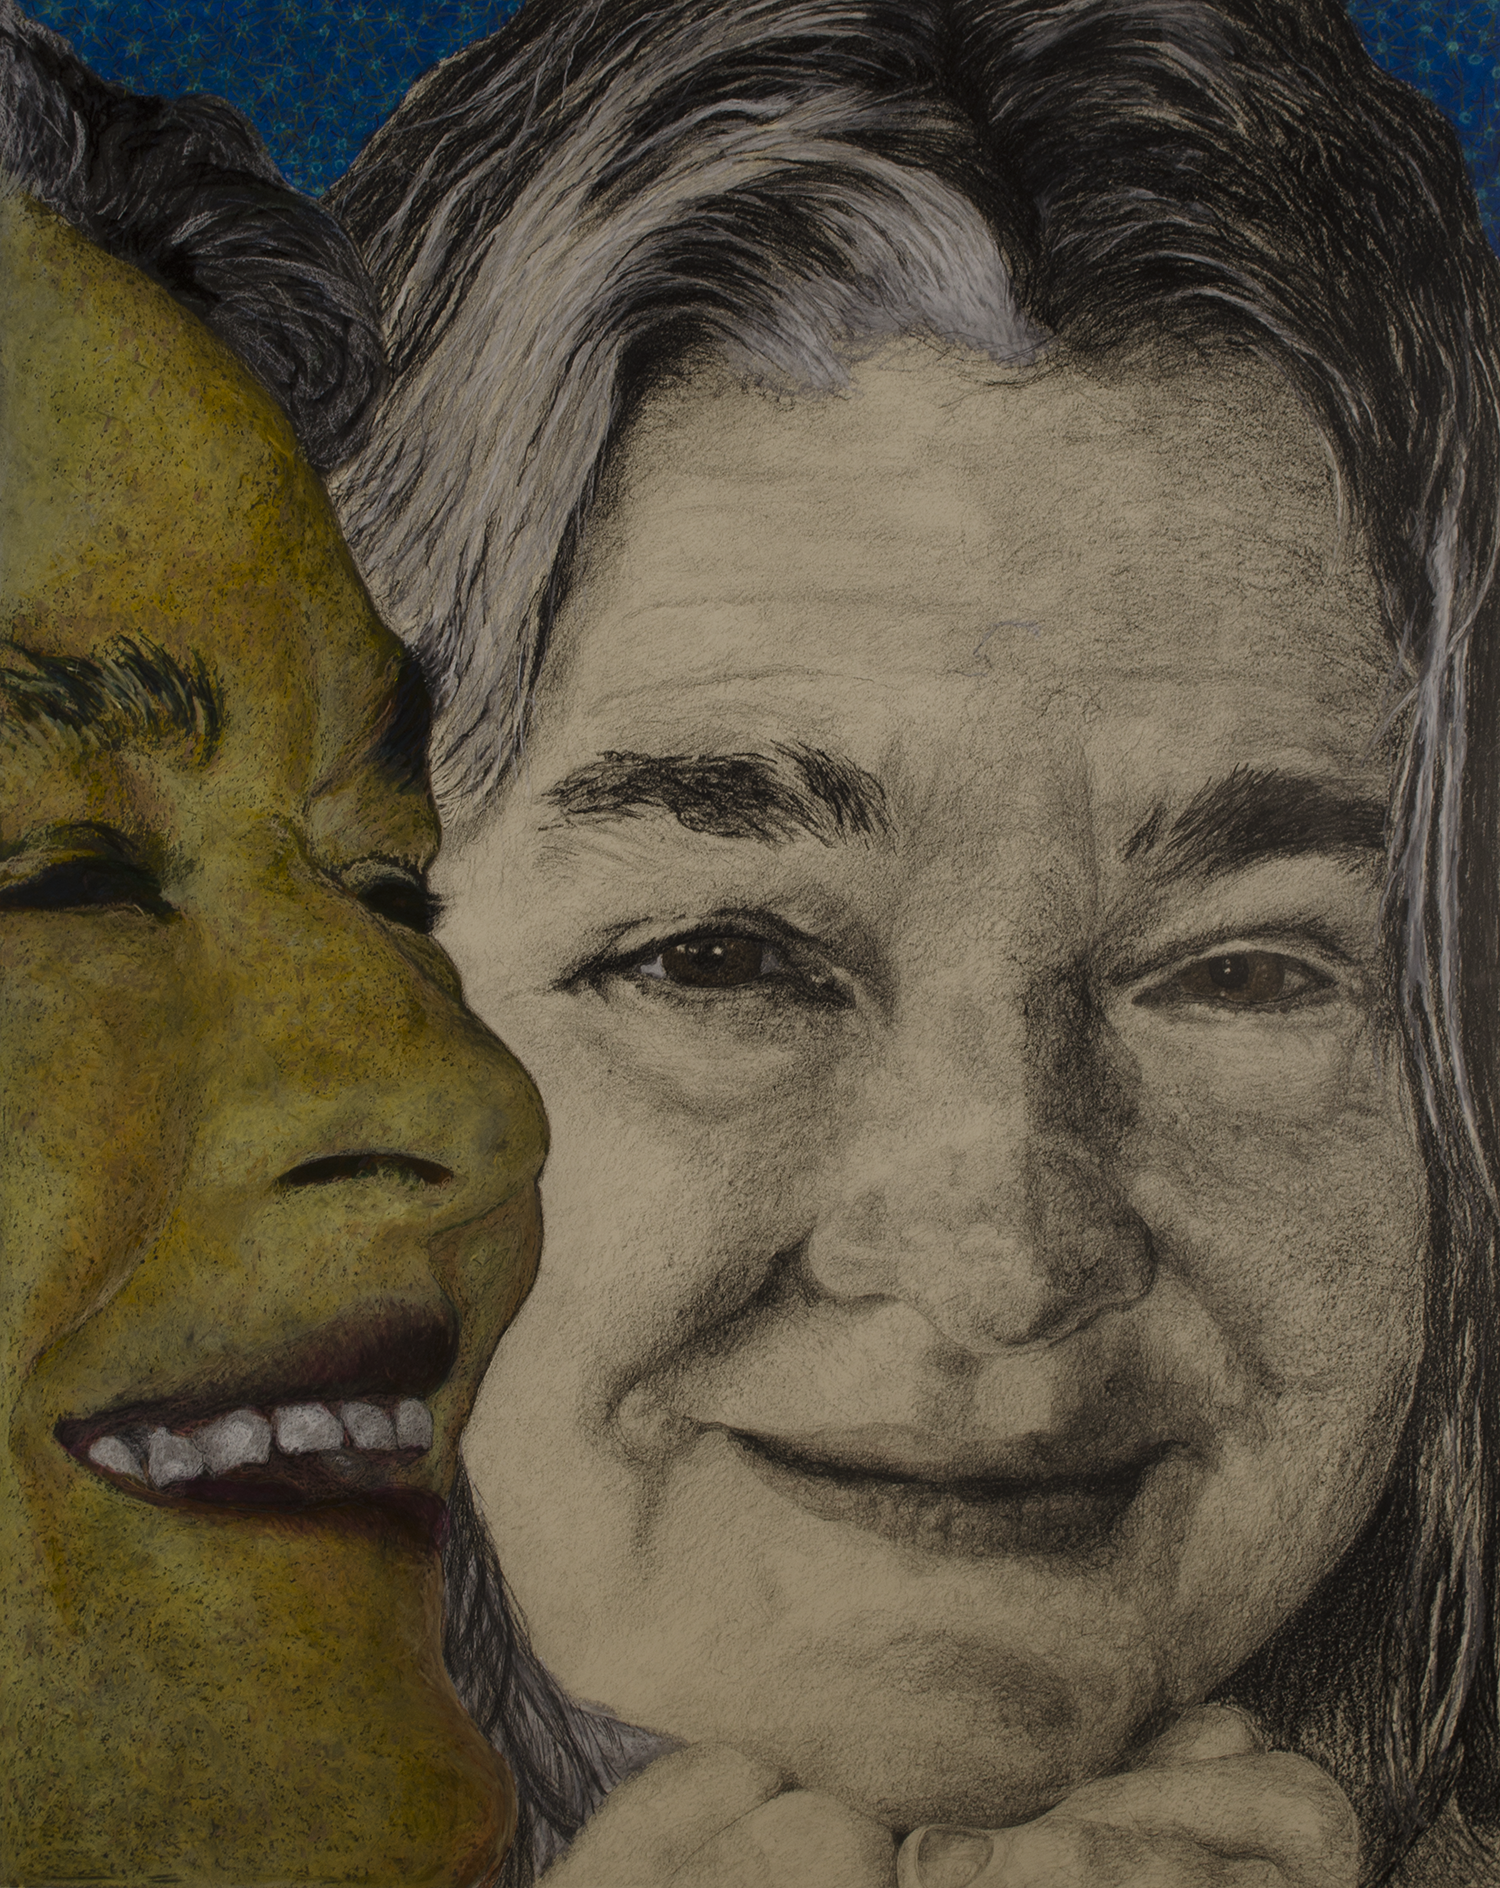 """KATHY MUEHLEMANN 2013  © PHOTOS: GARY GOLKIN 2013 ©  64.75""""X 52"""" [164.47 CM X 132.08 CM]CHINA MARKERS, OIL PASTELS ON PAPER"""